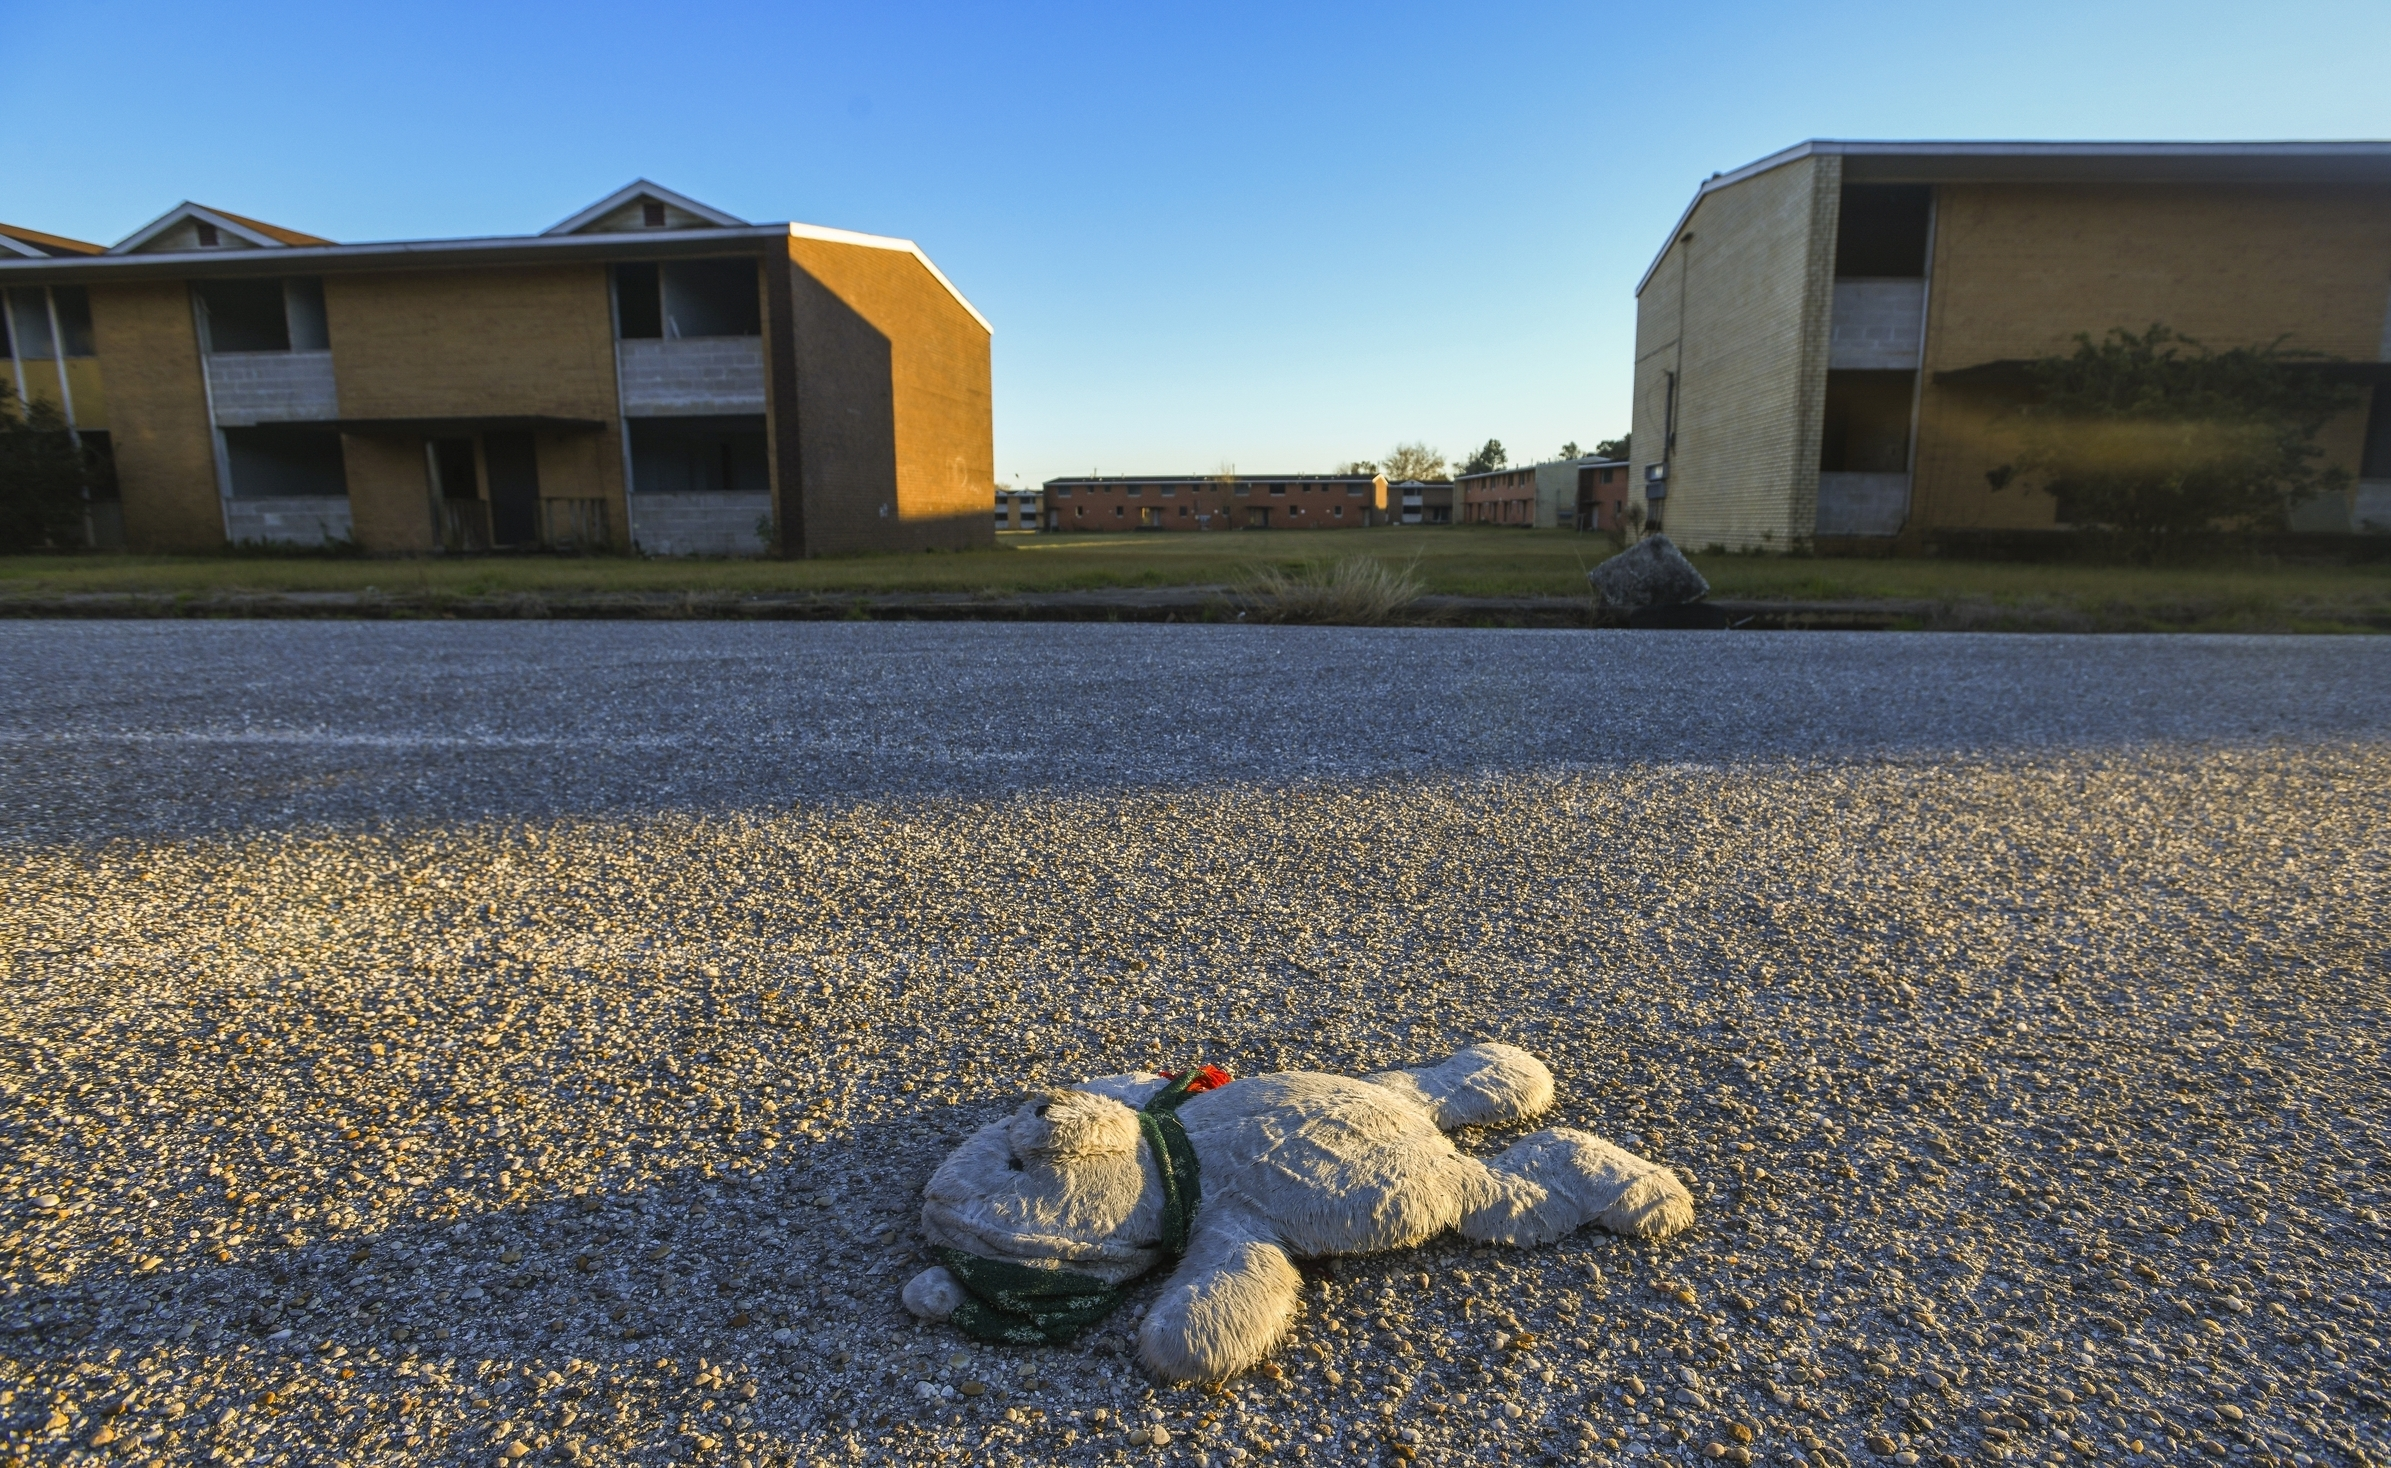 A teddy bear lies in the middle of Franklin Drive in what's known as the Africatown's Happy Hills community in Mobile, Ala., on Tuesday, Jan. 29, 2019. The Josephine Allen housing project stands abandoned in the background. (AP Photo/Julie Bennett)